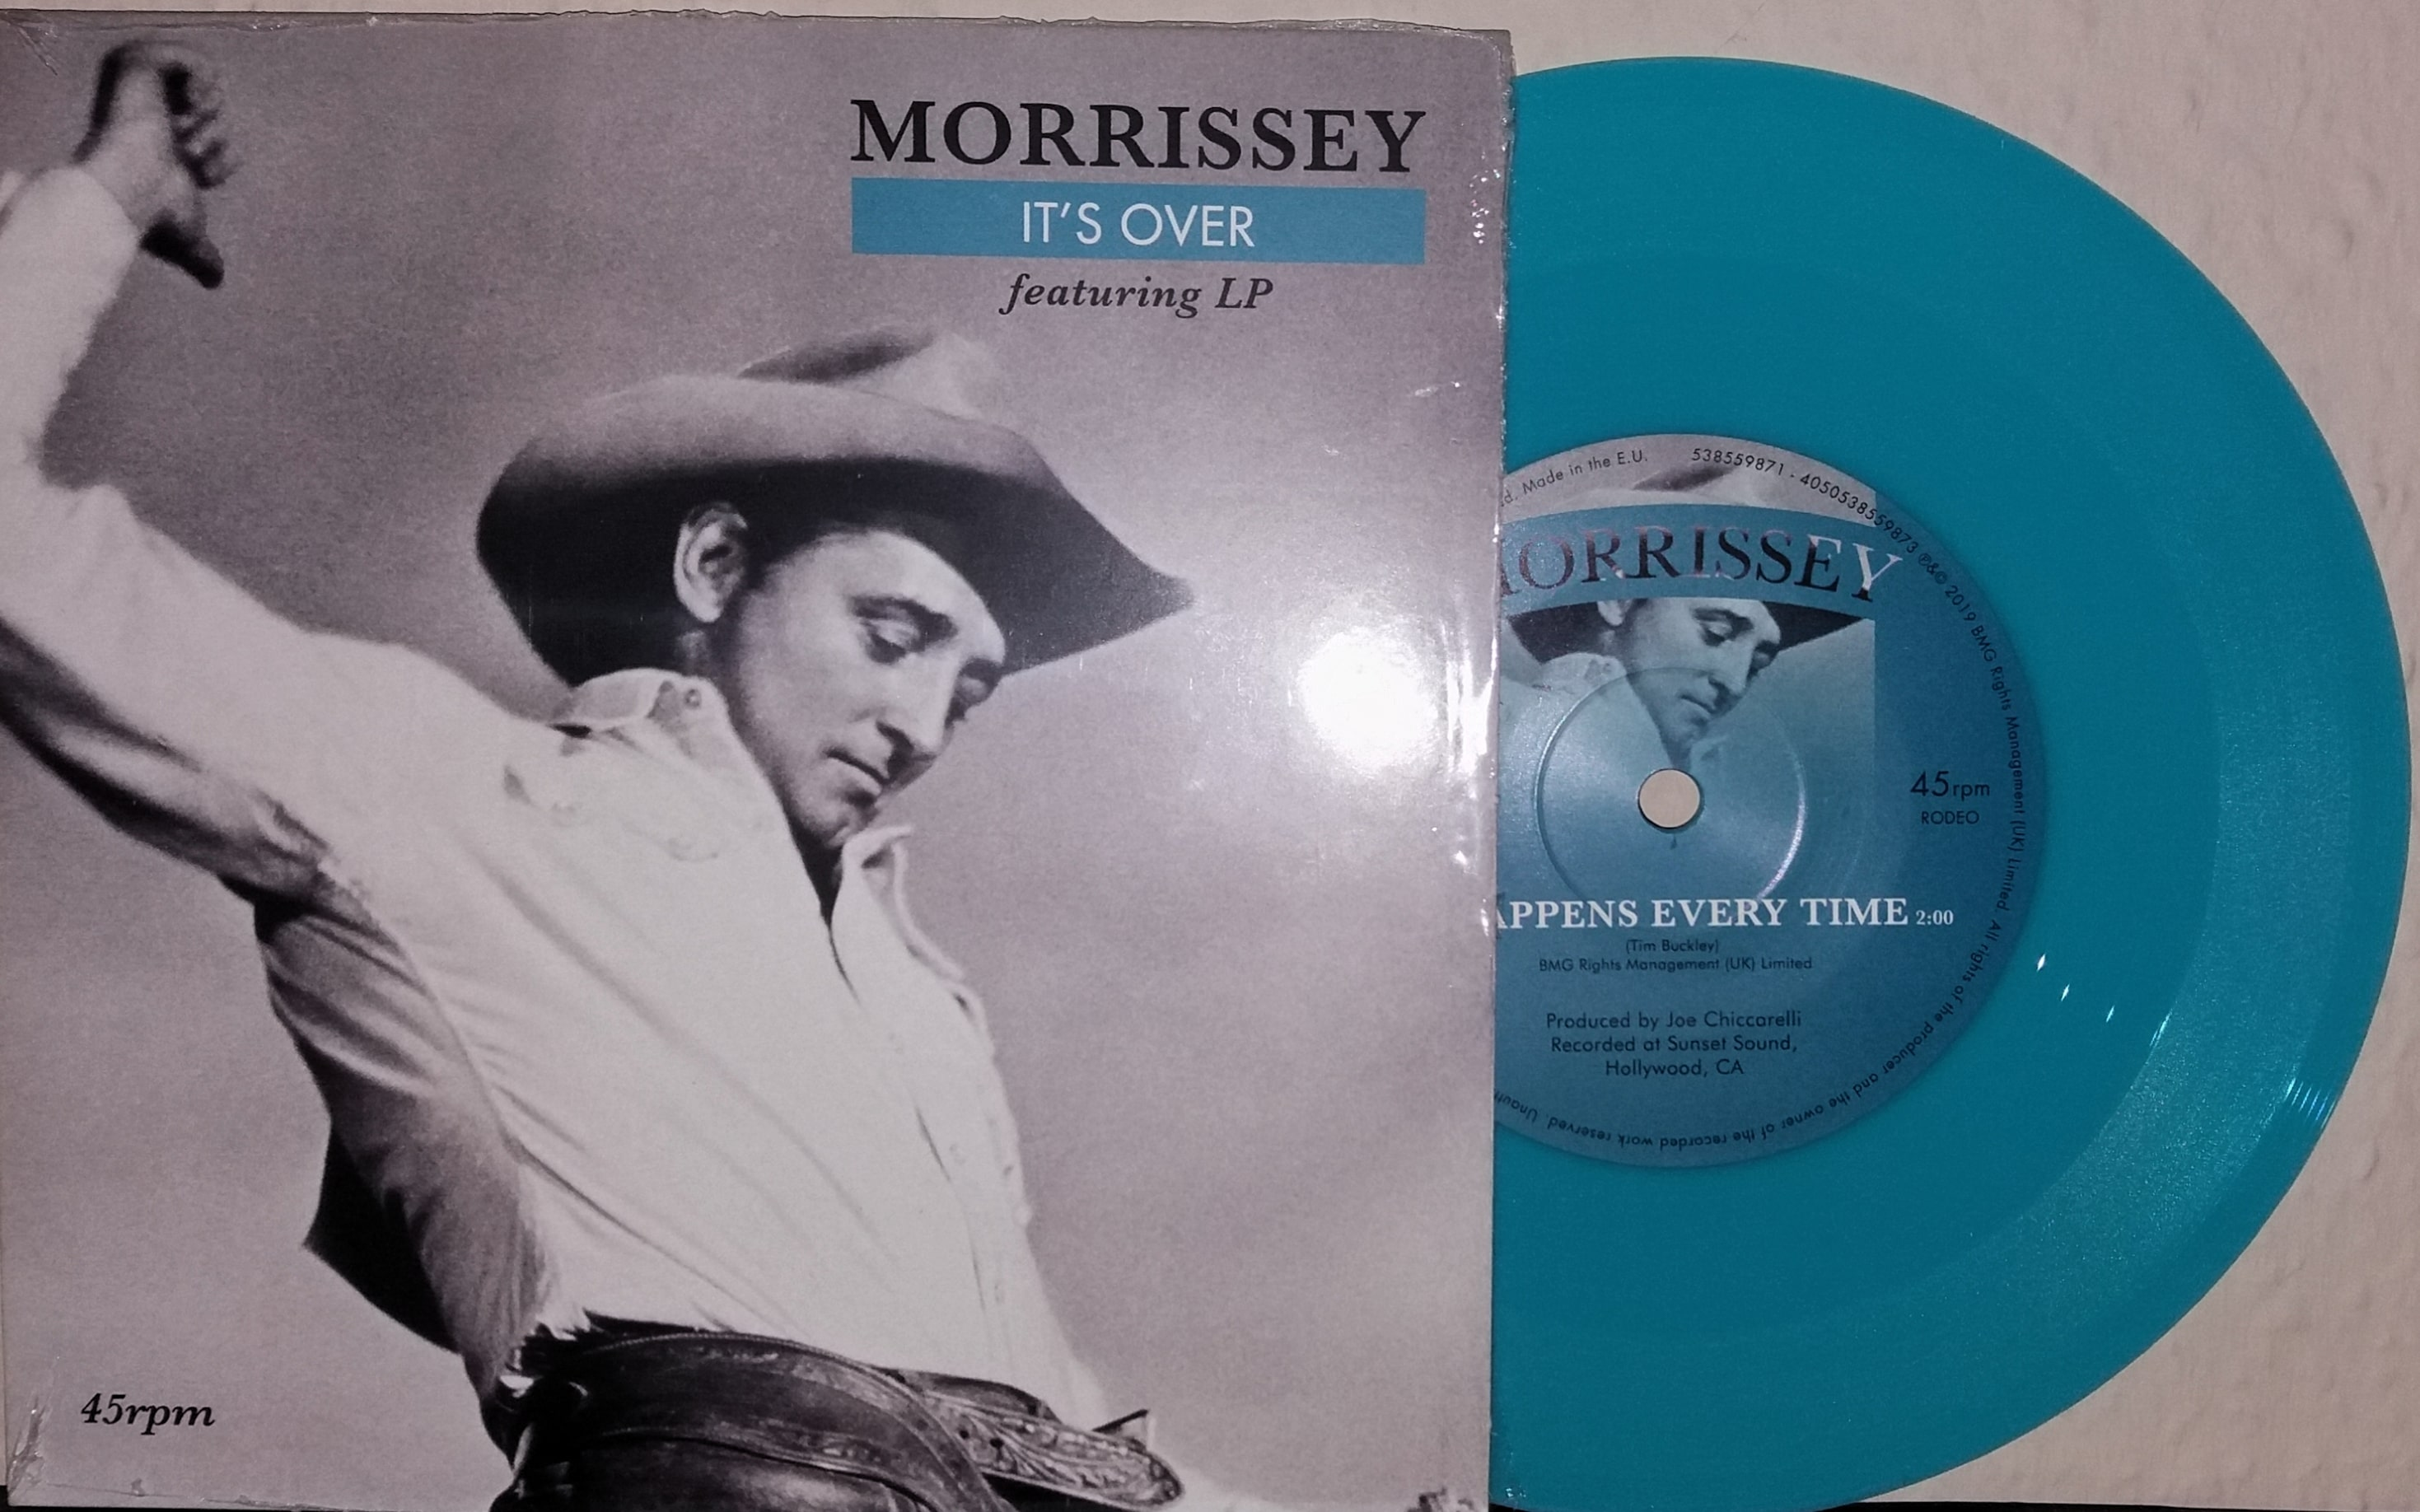 Morrissey – It's Over / It Happens Every Time